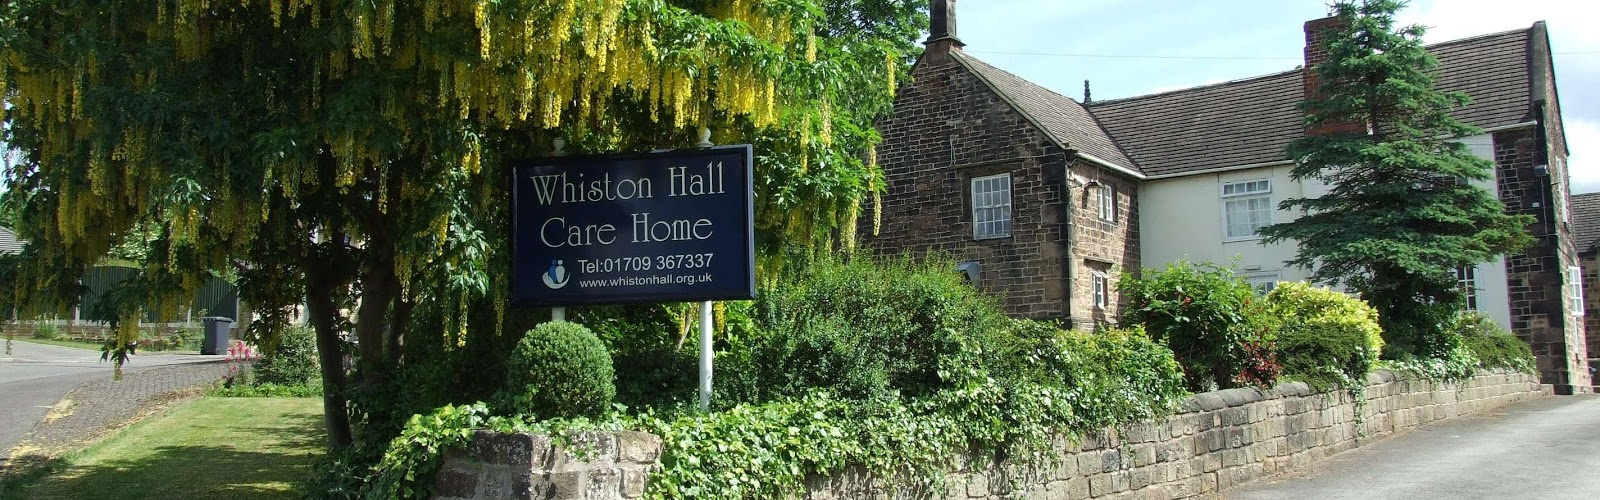 the front door and entrance to whiston hall